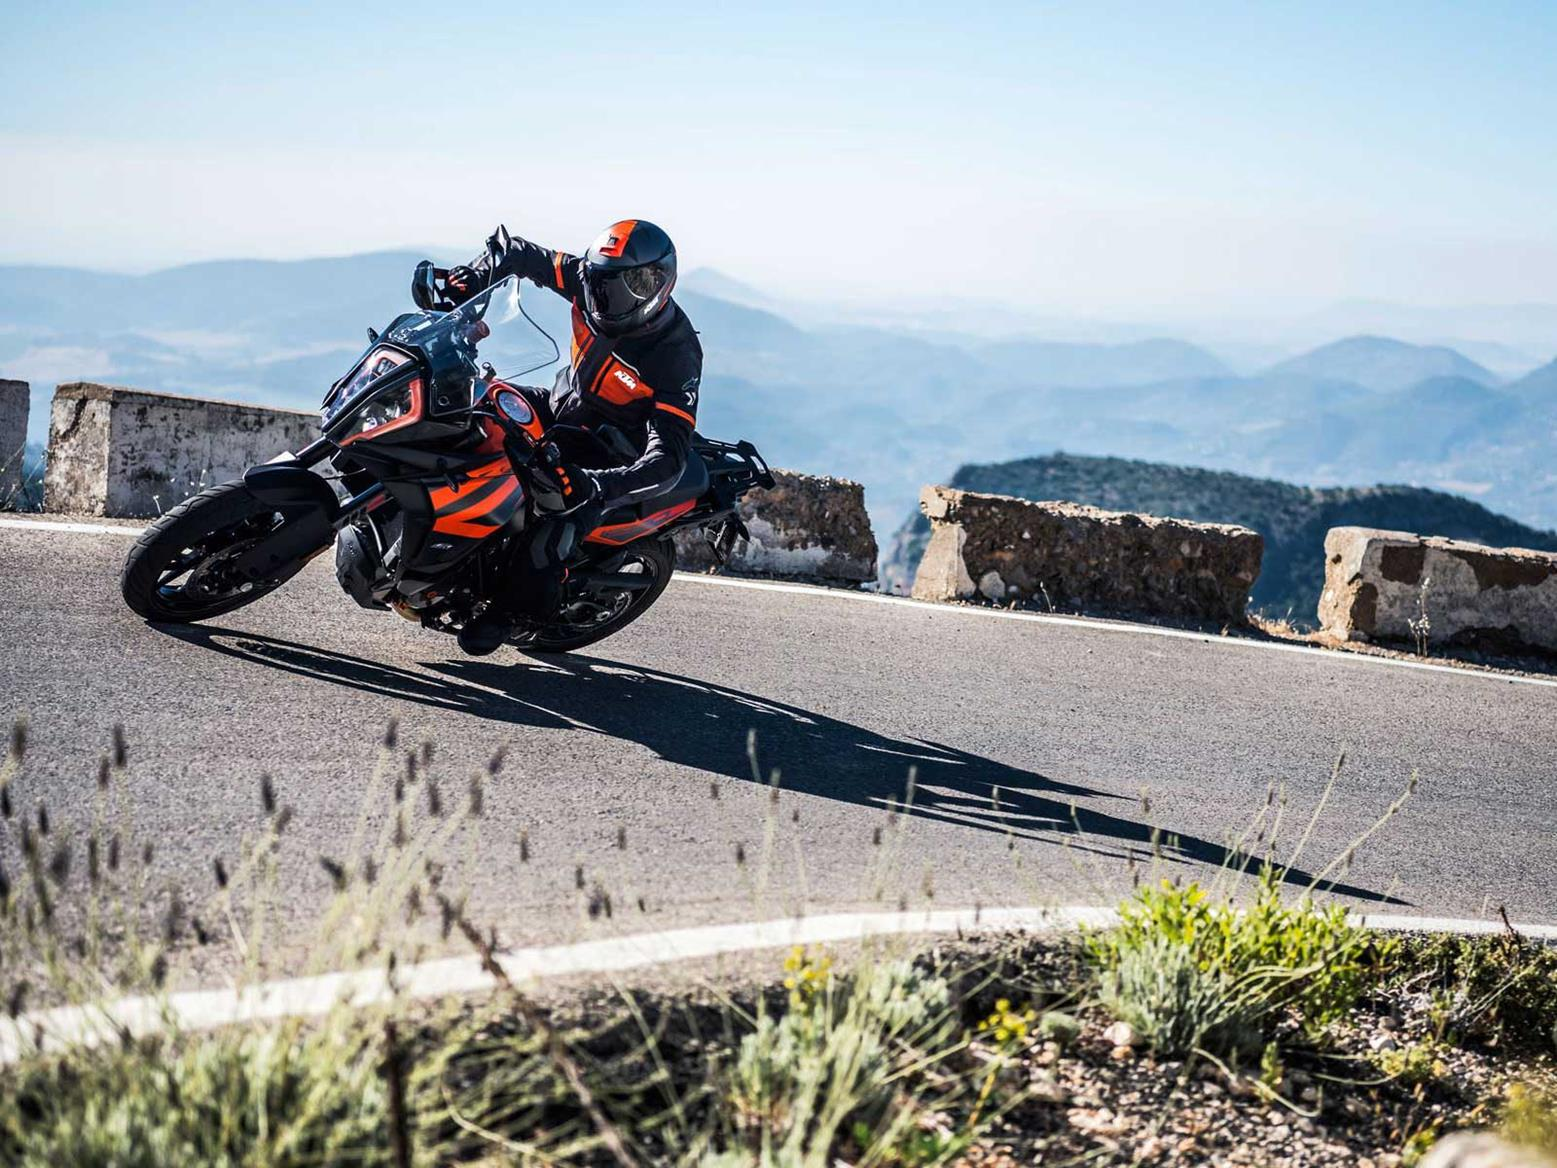 The KTM 1290 Super Adventure has power and poise